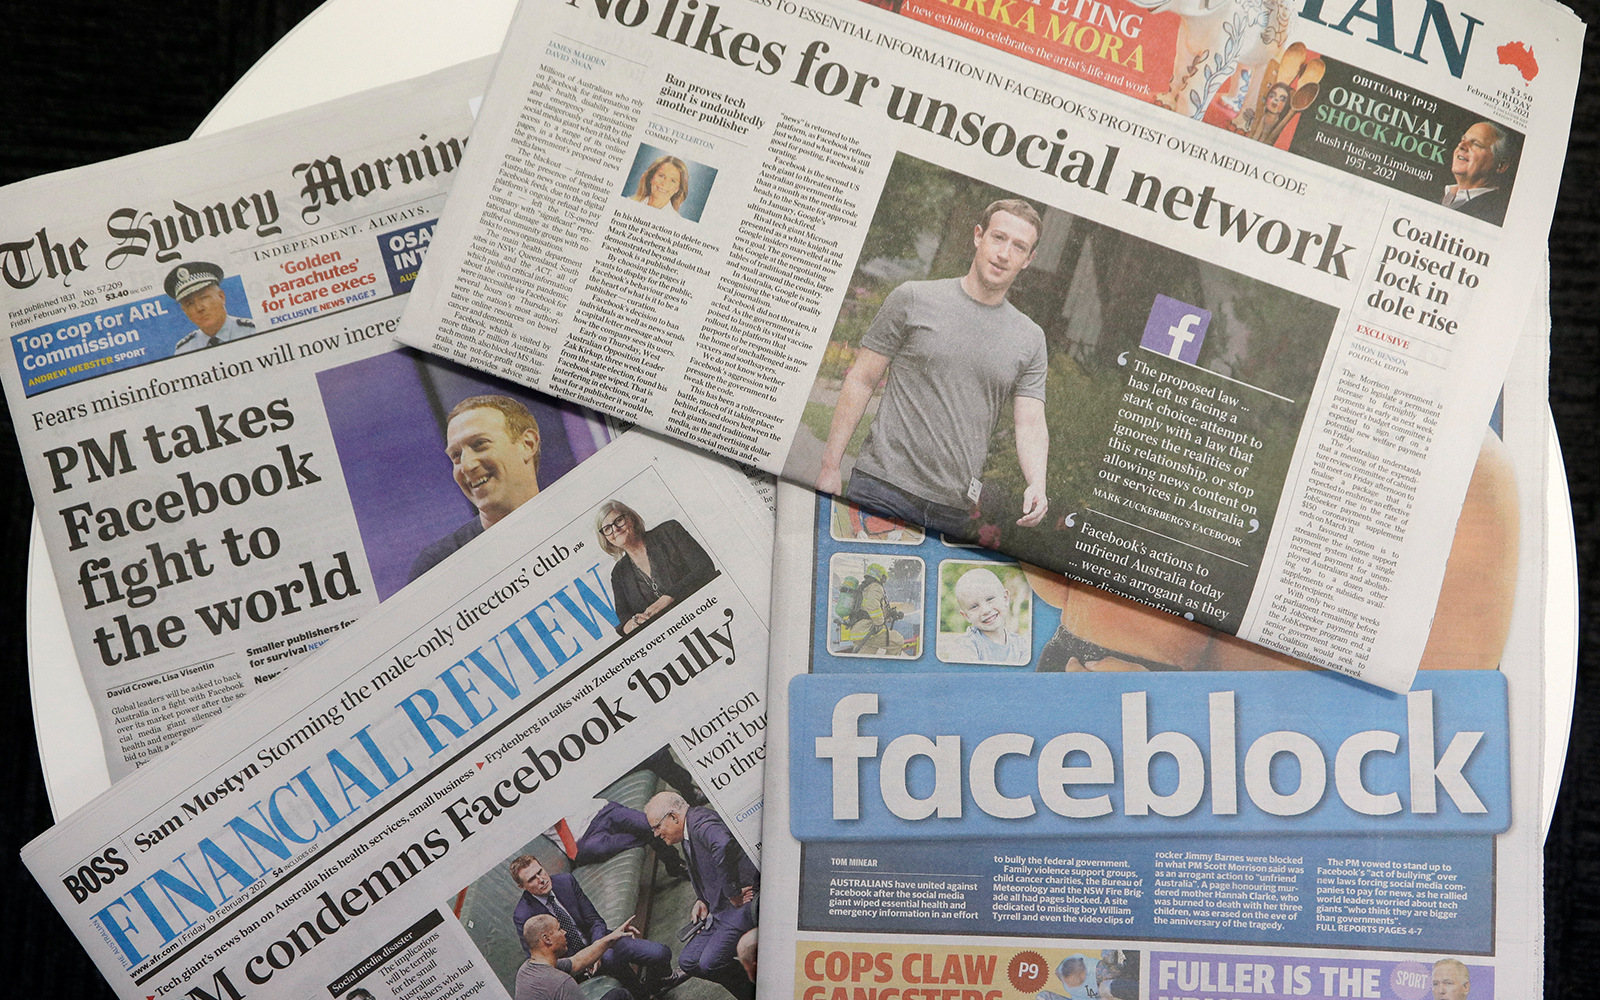 Front pages of Australian newspapers are displayed featuring stories about Facebook in Sydney Feb. 19 2021